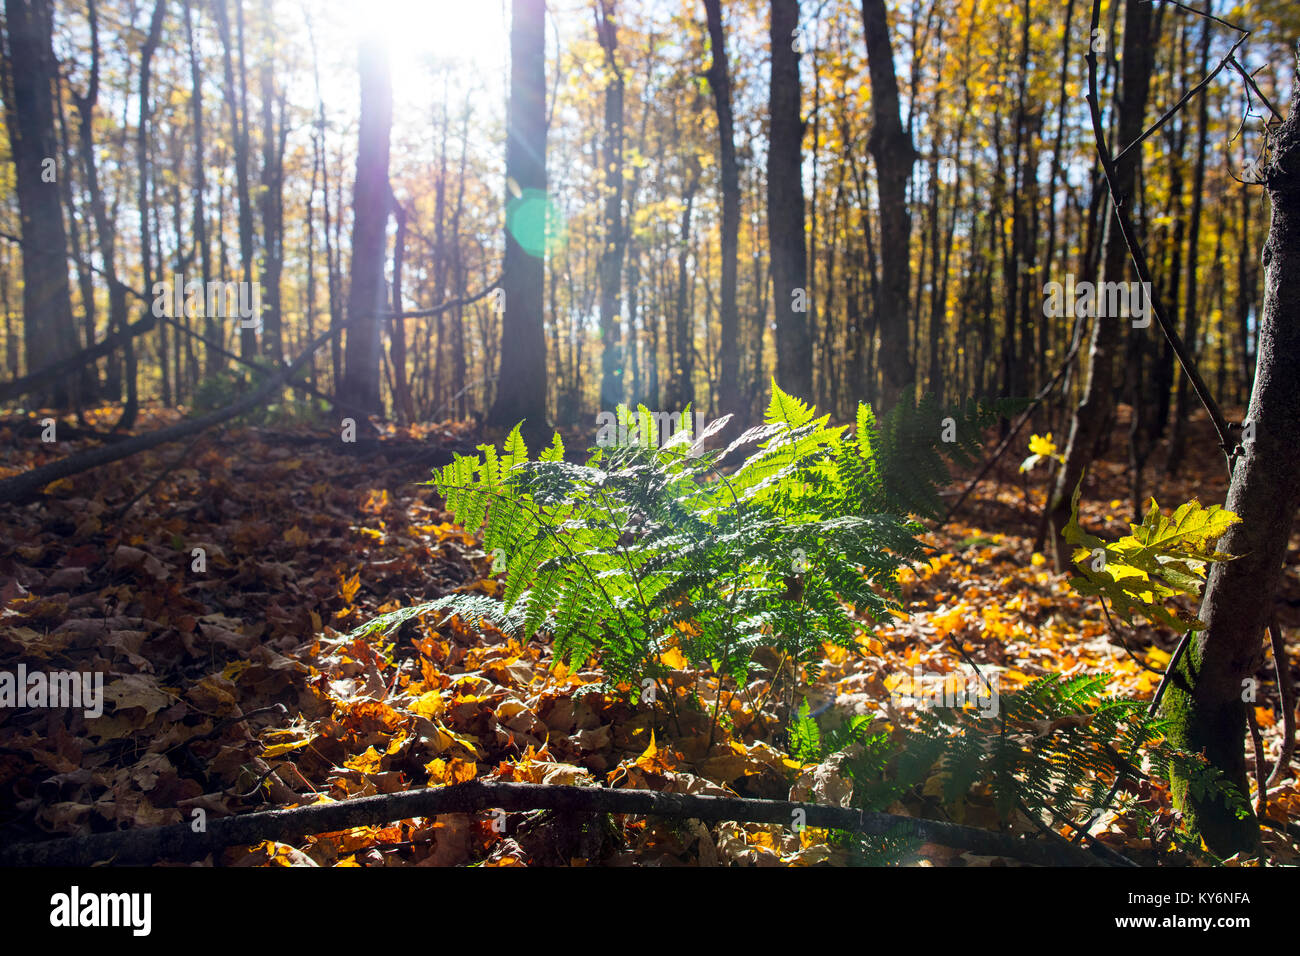 MAYNOOTH, ONTARIO, CANADA - October 20, 2017: The sun illuminates a fern on a fall forest floor. - Stock Image